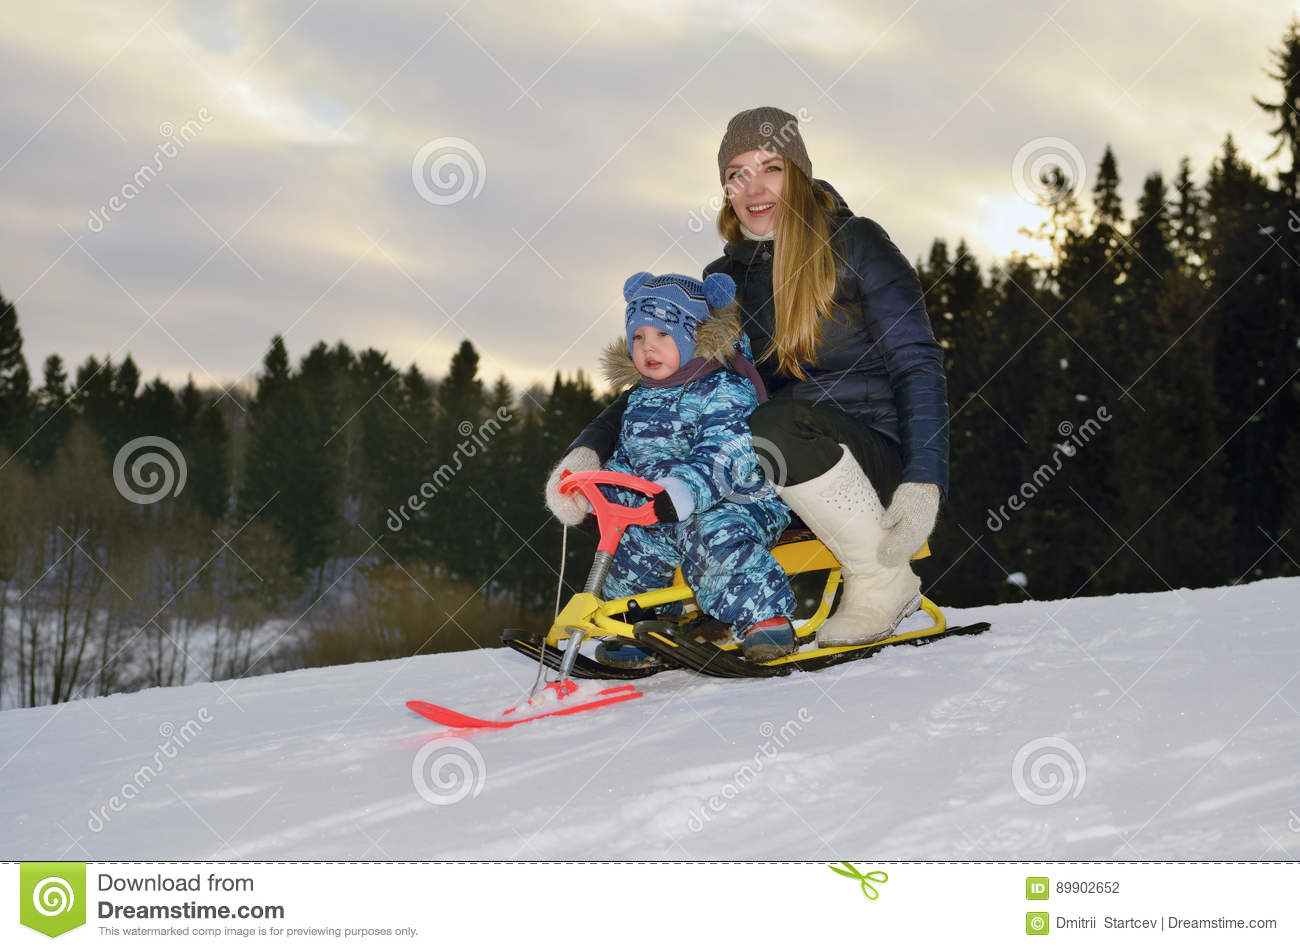 A girl with a child riding on a sledge